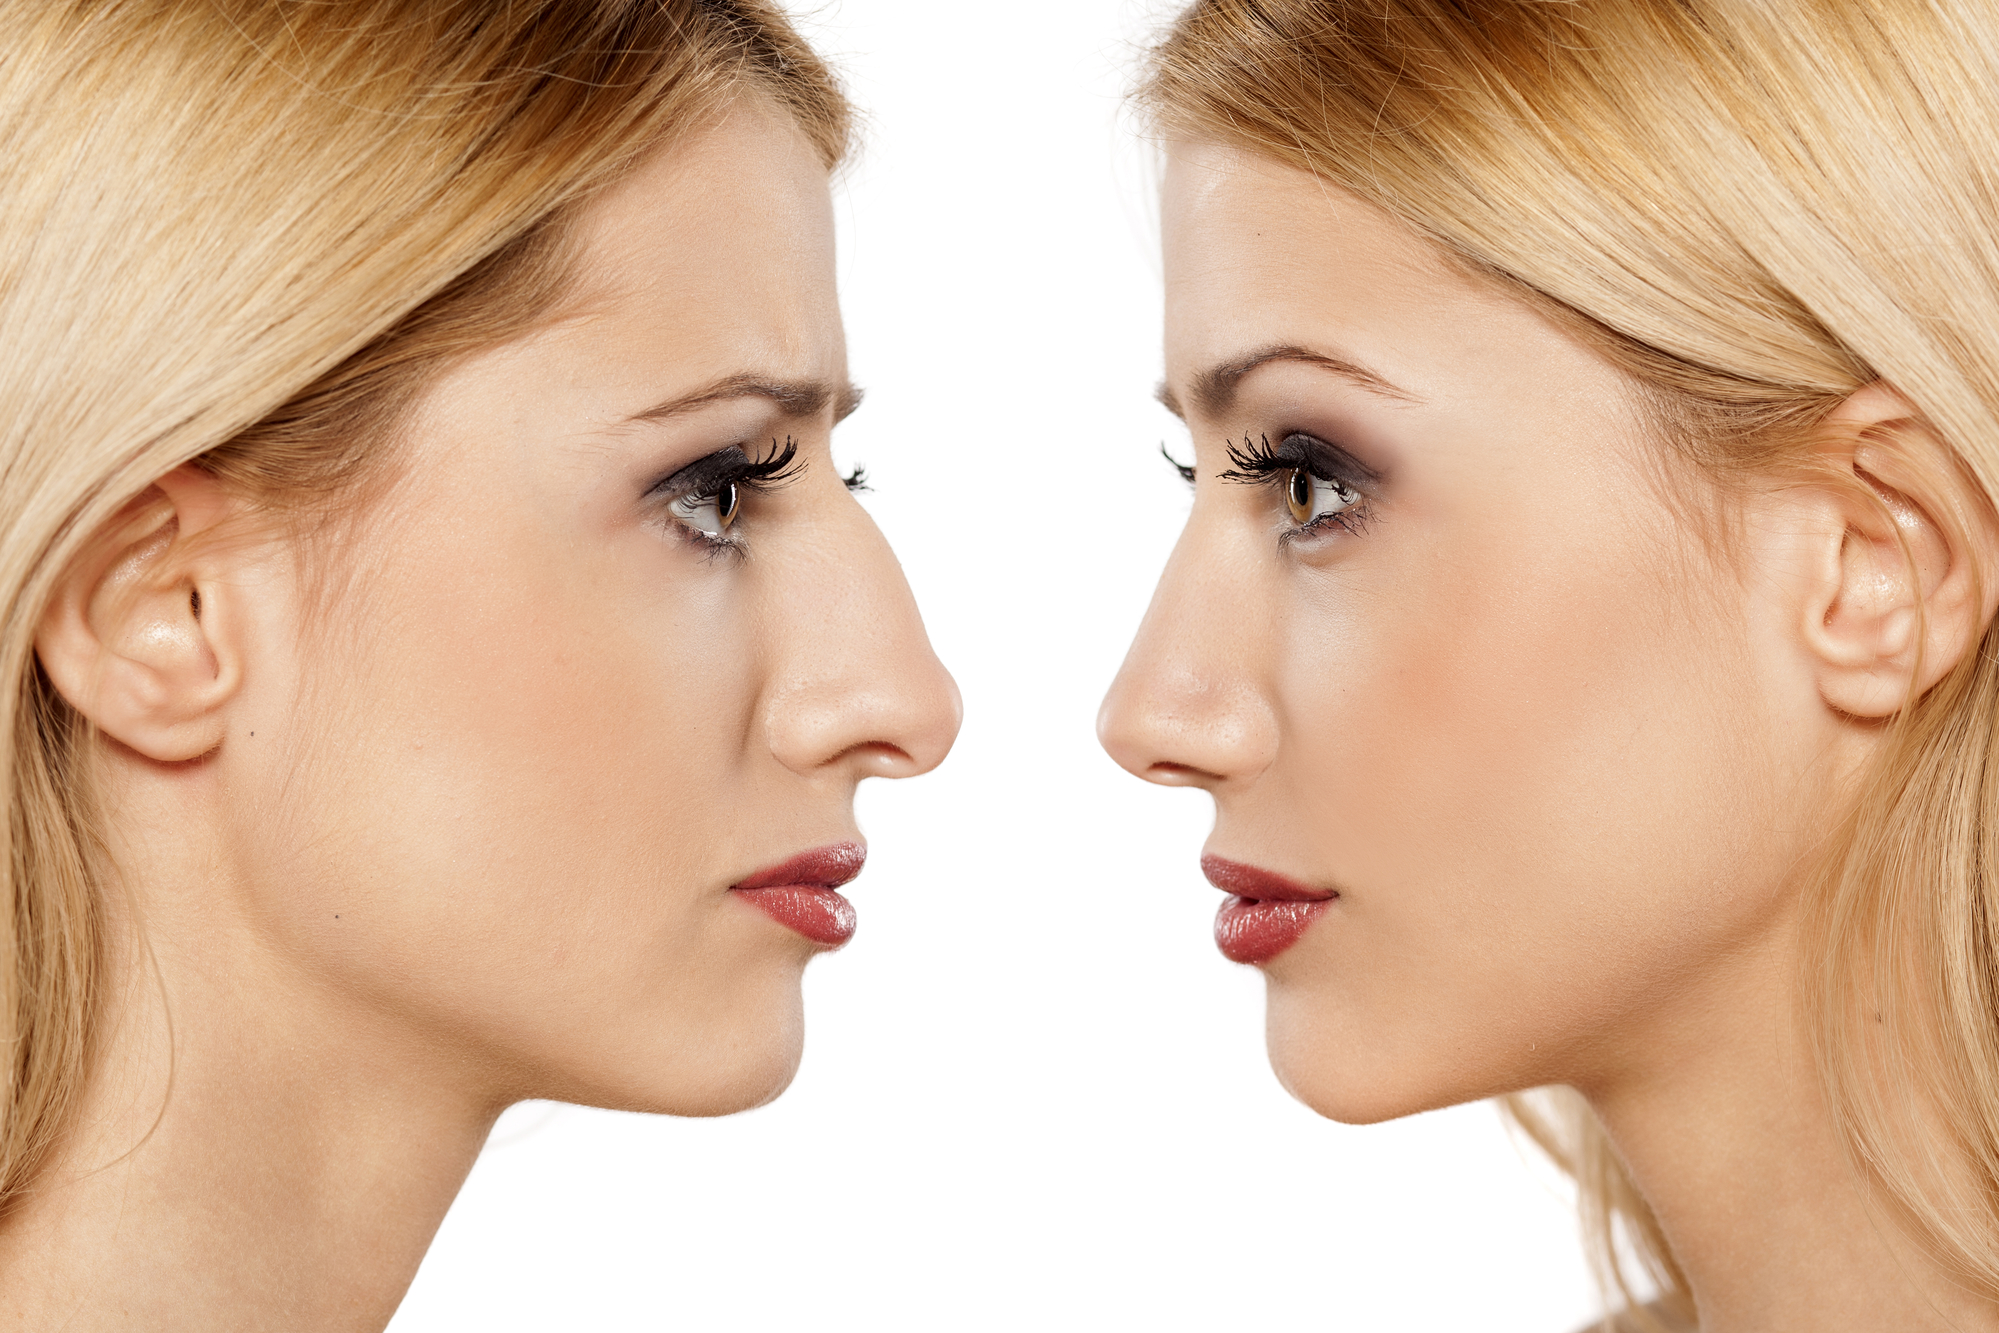 Tips For Faster Healing After Rhinoplasty